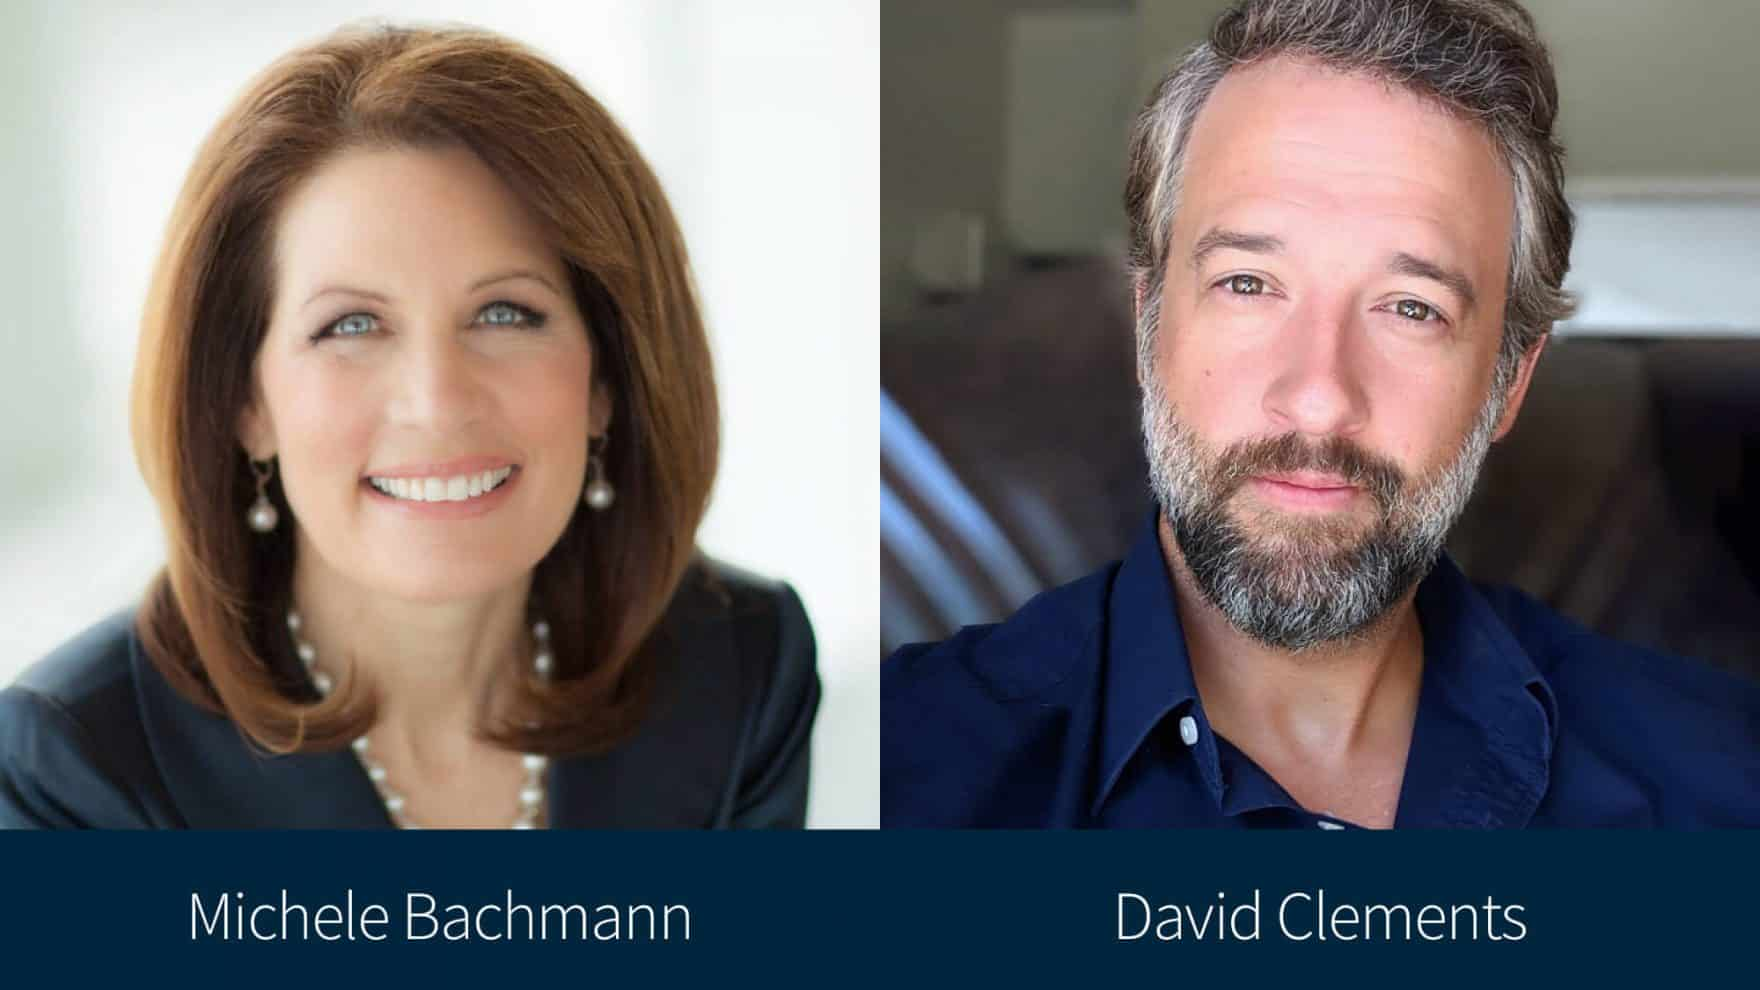 Michele Bachmann and David Clements, the moderator and a speaker of Regent University's conference on election integrity.